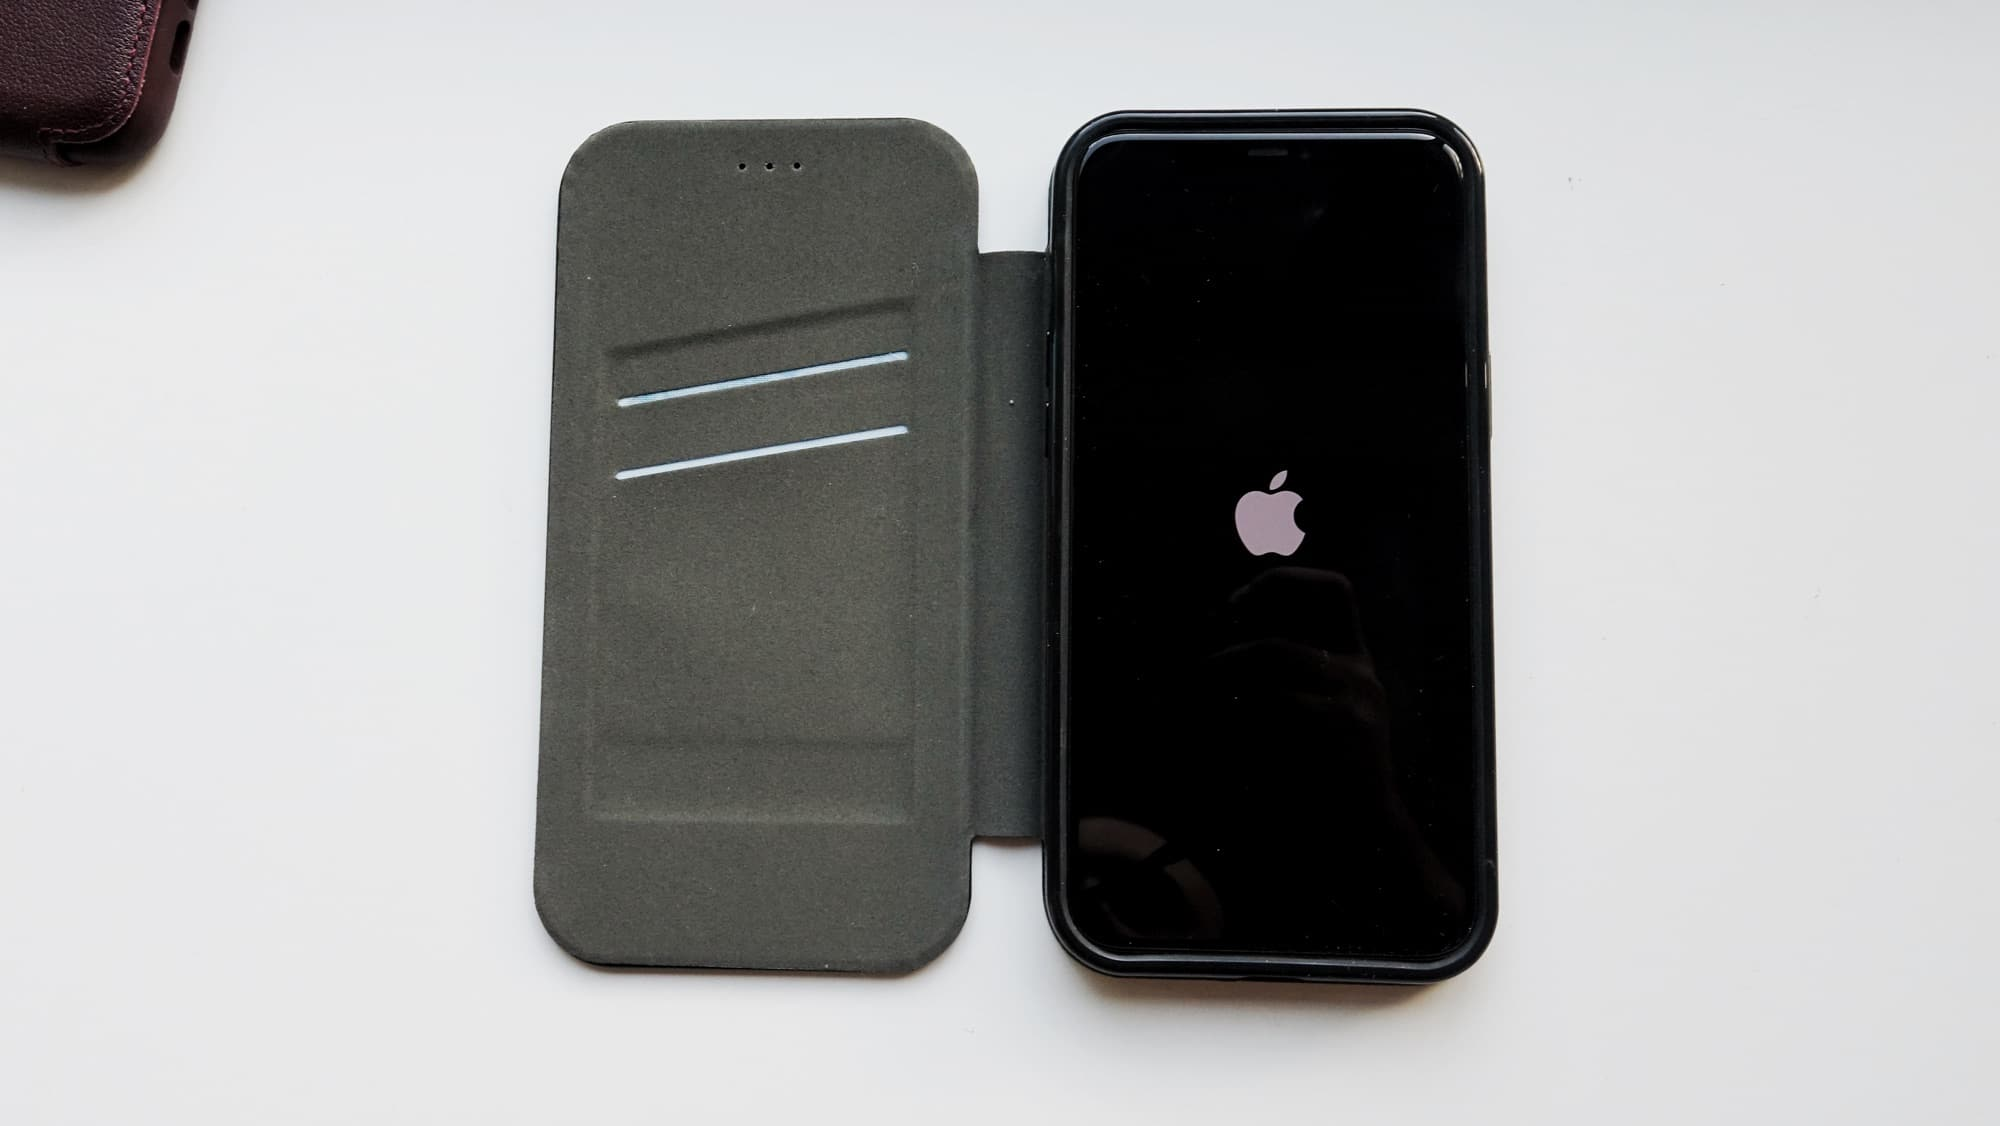 Can you put an iPhone 11 Pro Max into an iPhone 12 Pro Max case?